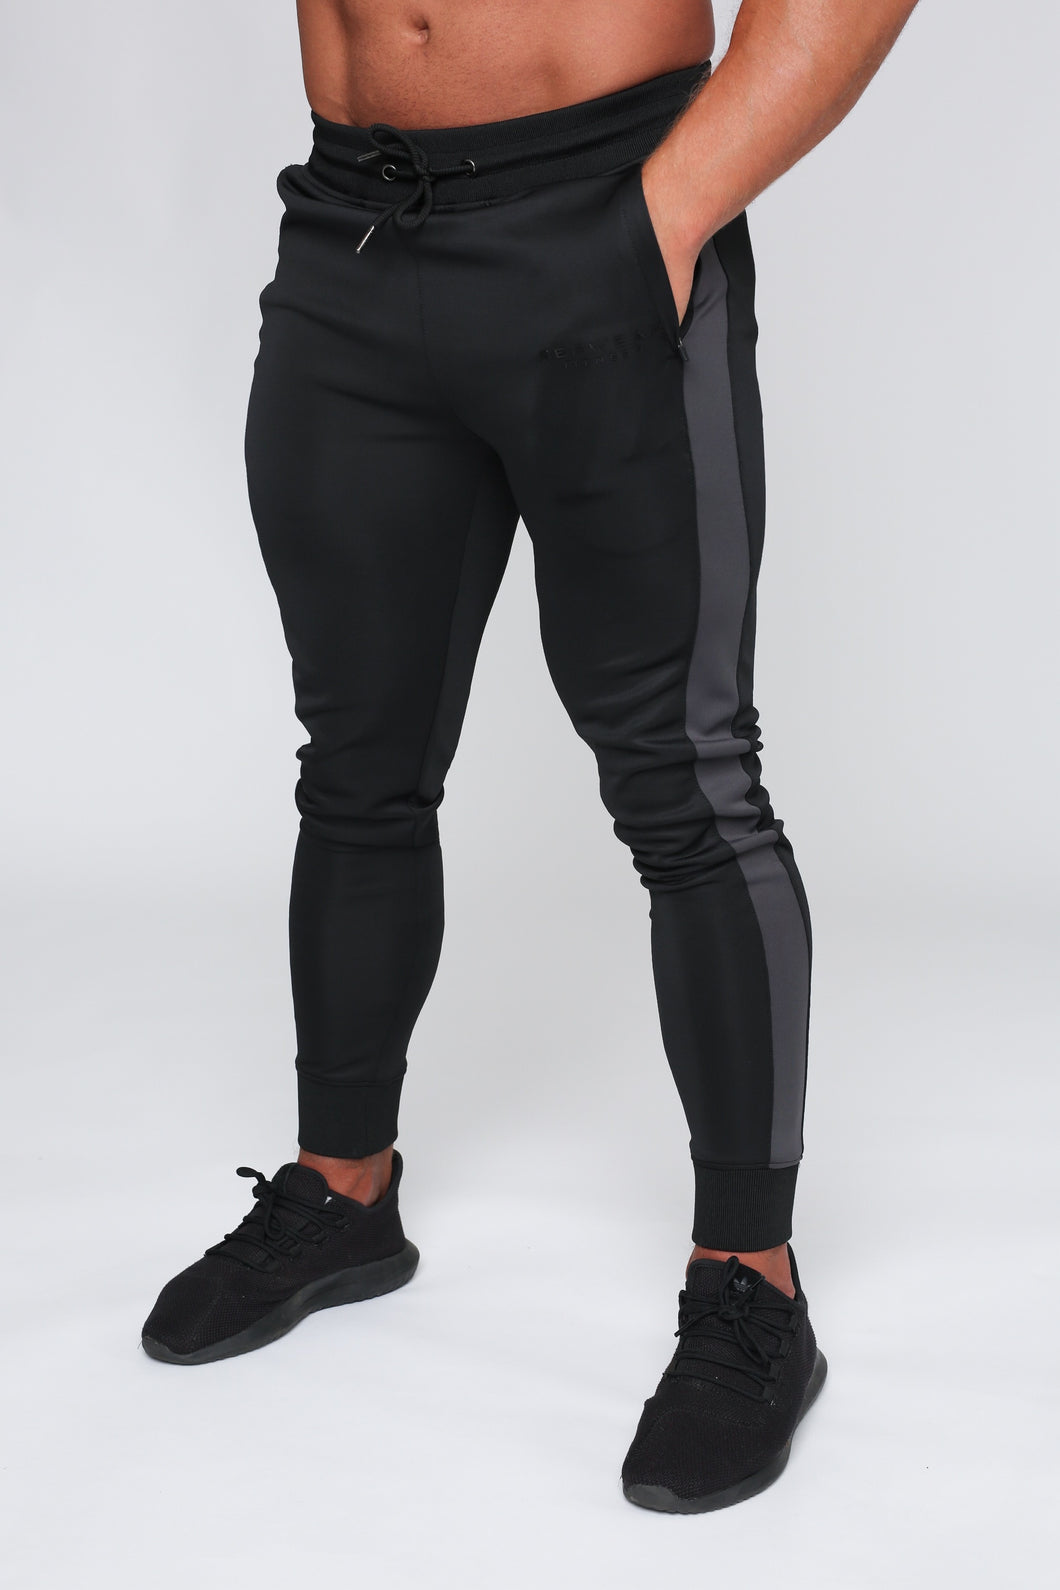 Repwear Fitness Original Poly Tracksuit Bottoms Black